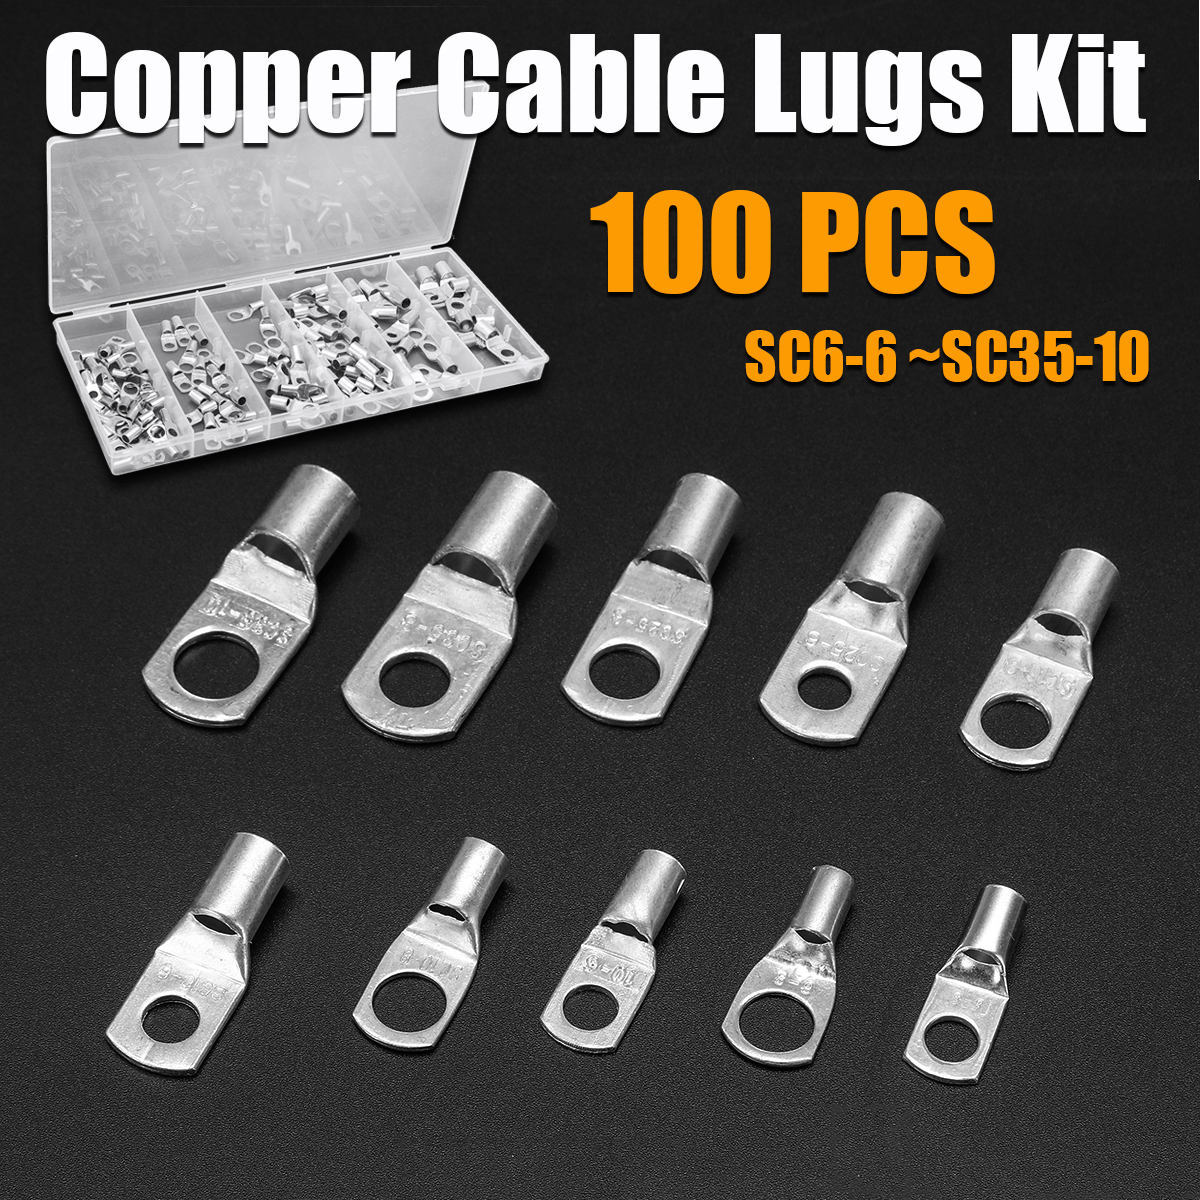 100Pcs Copper Cable Lugs Kit SC6-6 ~SC35-10 Electrical Terminal Block Wire Connectors Cable Lug Set for Electrical Equipment100Pcs Copper Cable Lugs Kit SC6-6 ~SC35-10 Electrical Terminal Block Wire Connectors Cable Lug Set for Electrical Equipment